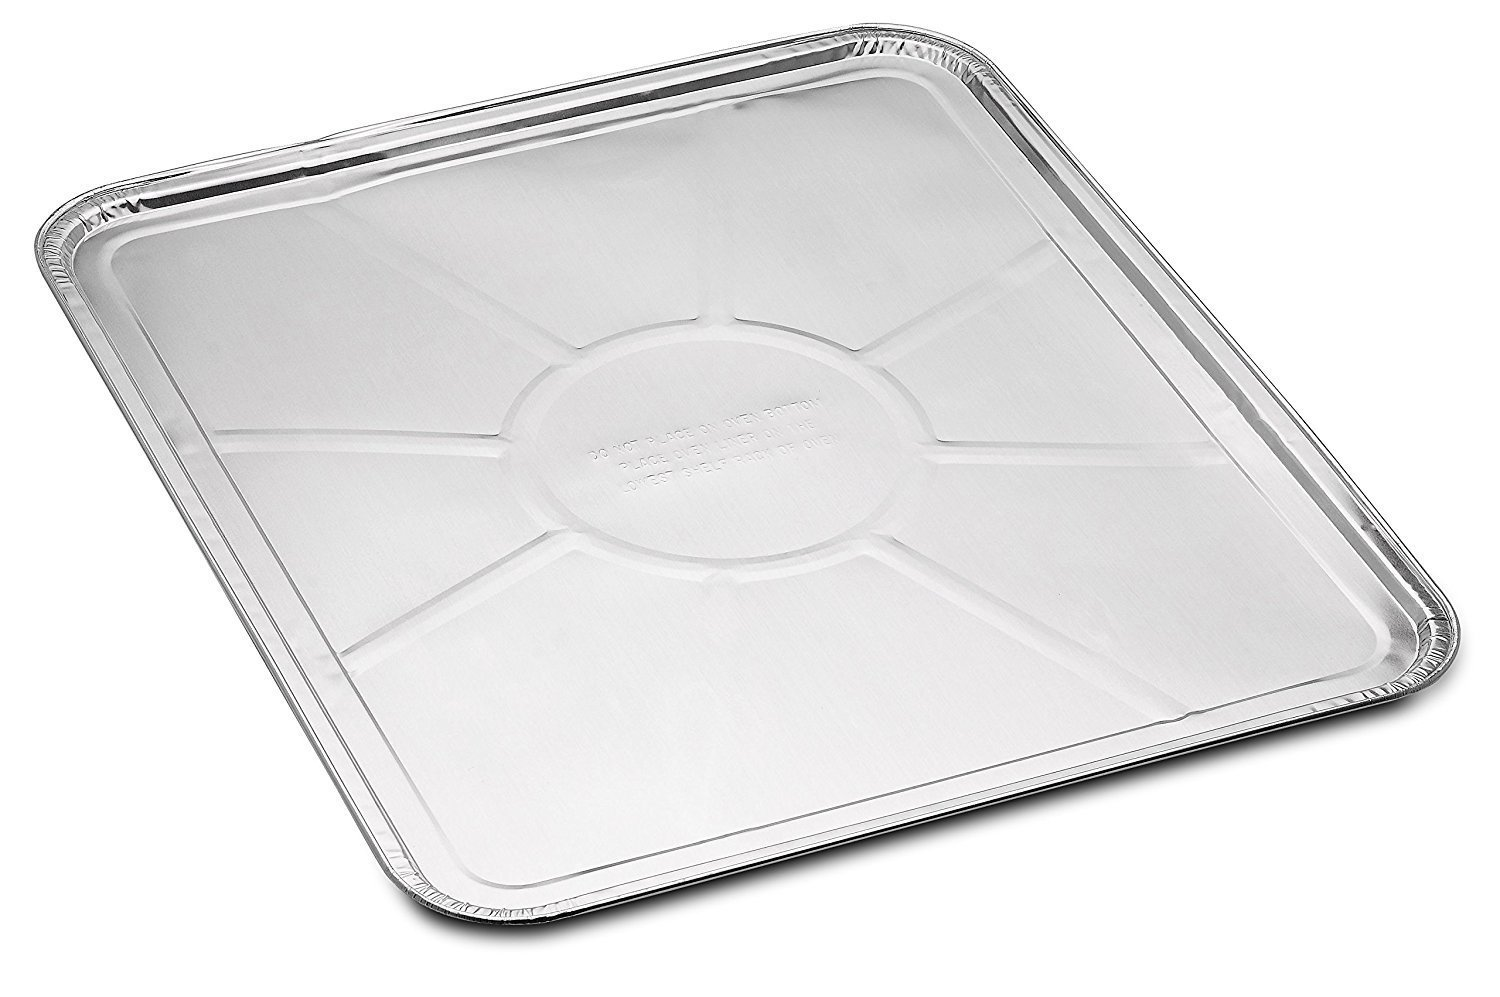 "20-Pack Disposable Foil Oven Liners by DCS Deals – Keep Your Oven Clean and Healthy – Perfect Silver Foil Drip Pan Tray for Cooking, Baking, Roasting, and Grilling- 18.5 x15.5"" inch"